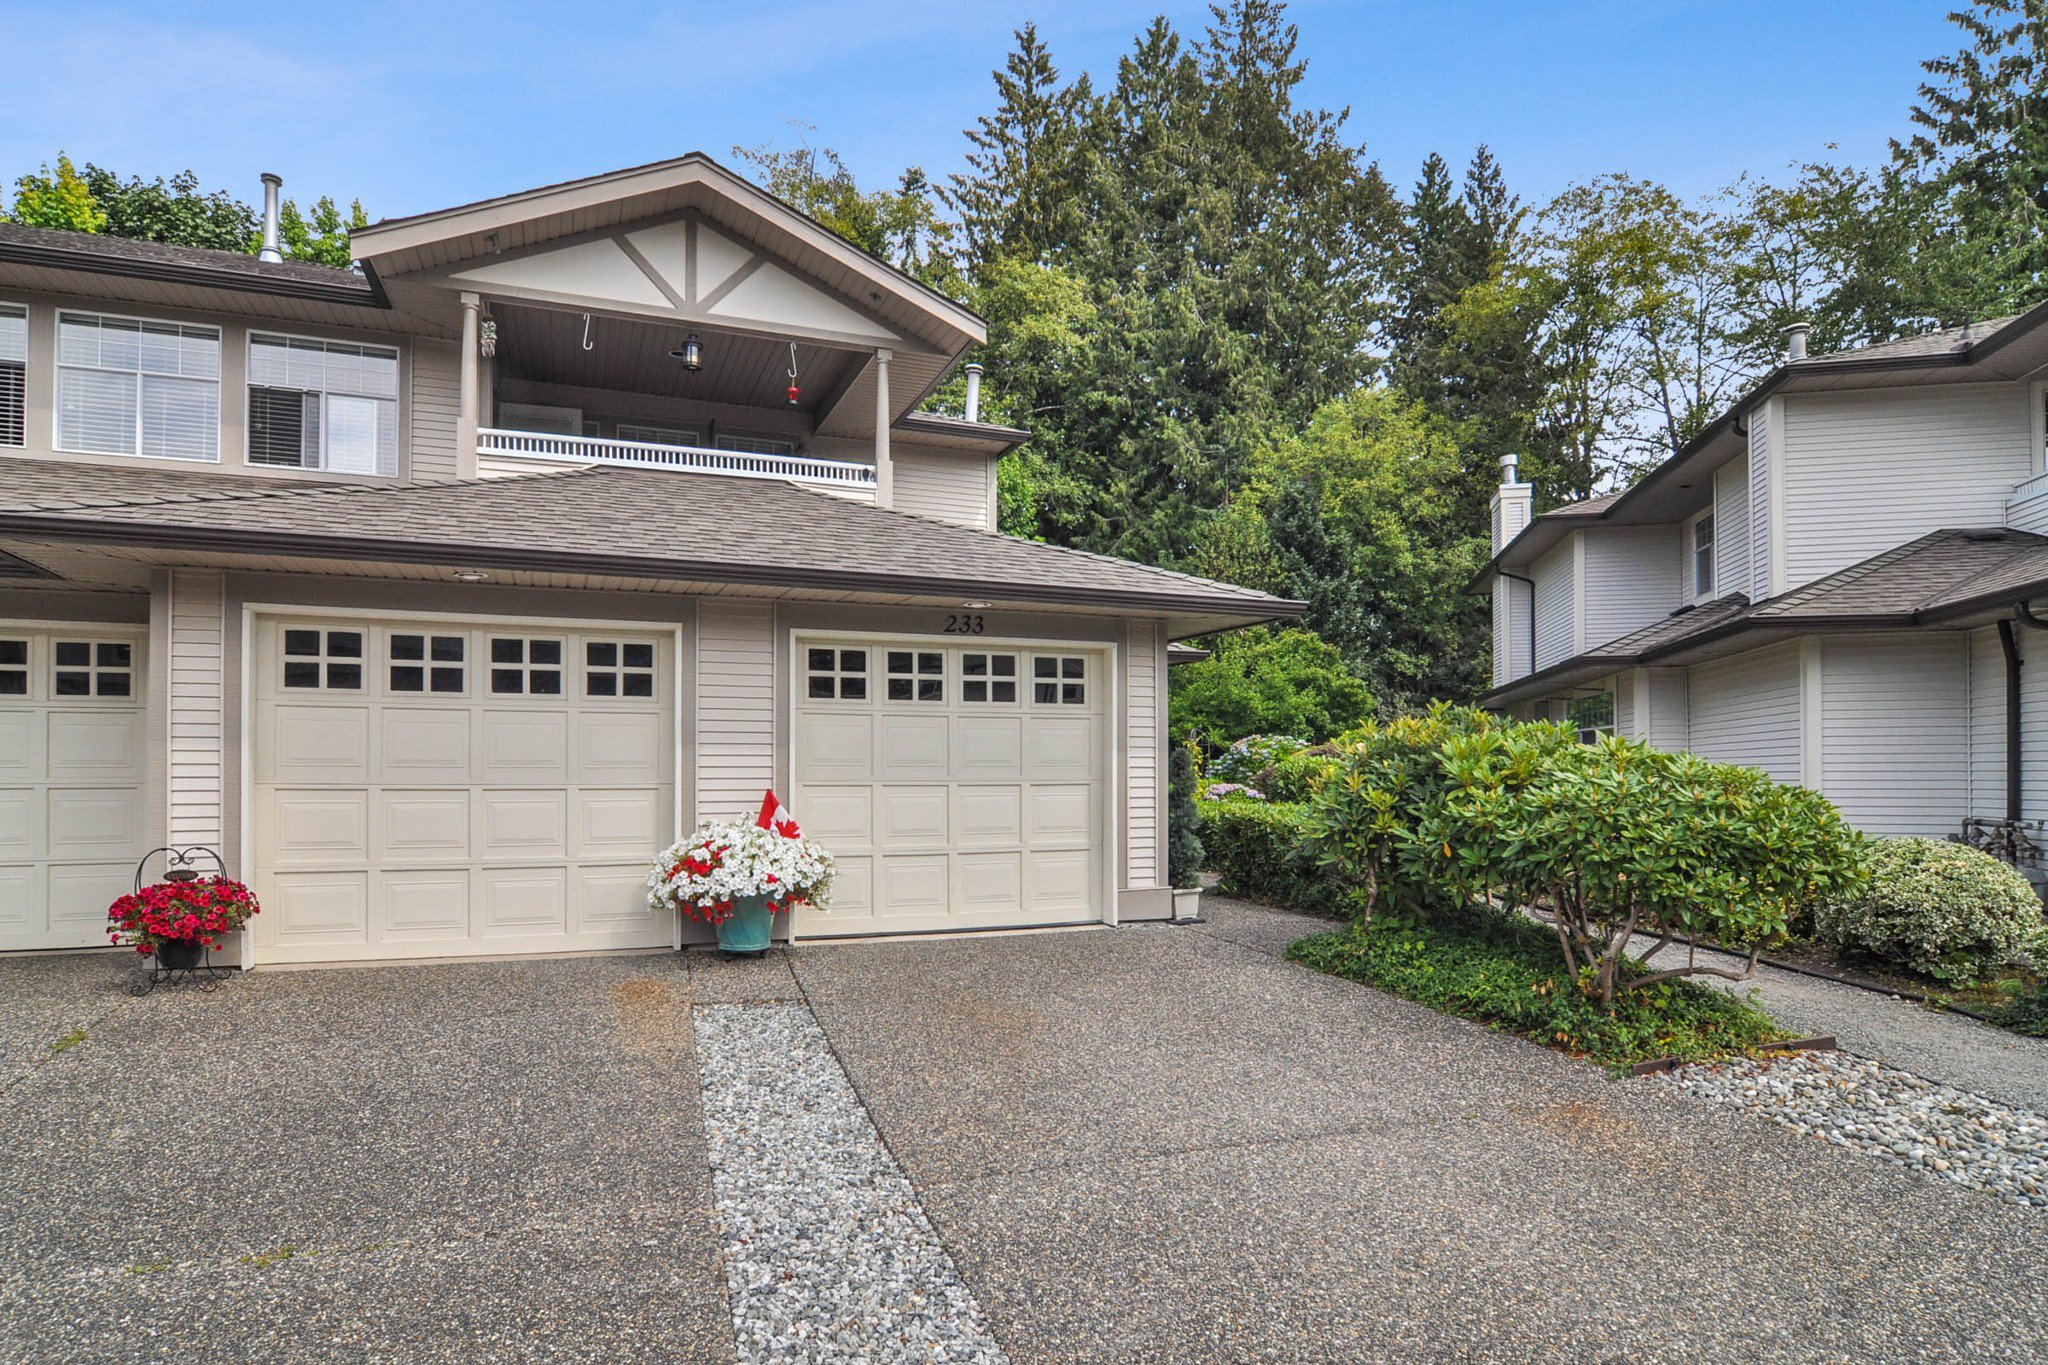 """Main Photo: 233 20391 96 Avenue in Langley: Walnut Grove Townhouse for sale in """"Chelsea Green"""" : MLS®# R2489139"""